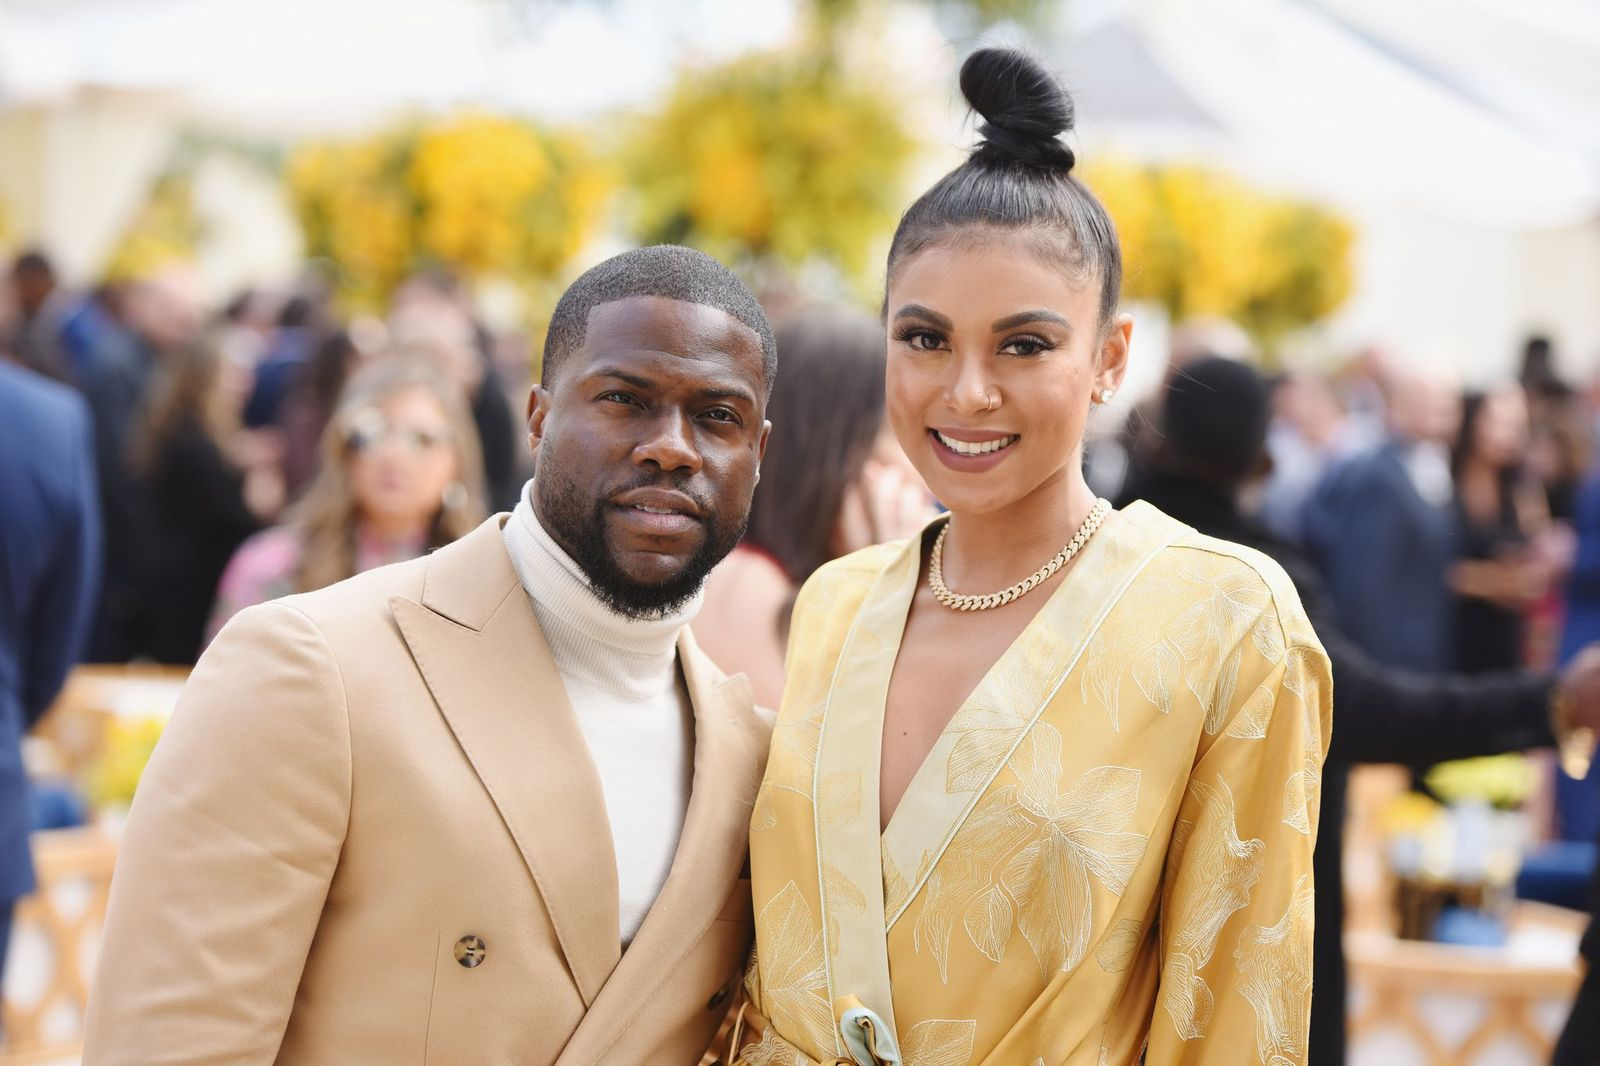 """Kevin Hart and Eniko Parrish at Roc Nation's """"The Brunch"""" on February 9, 2019 